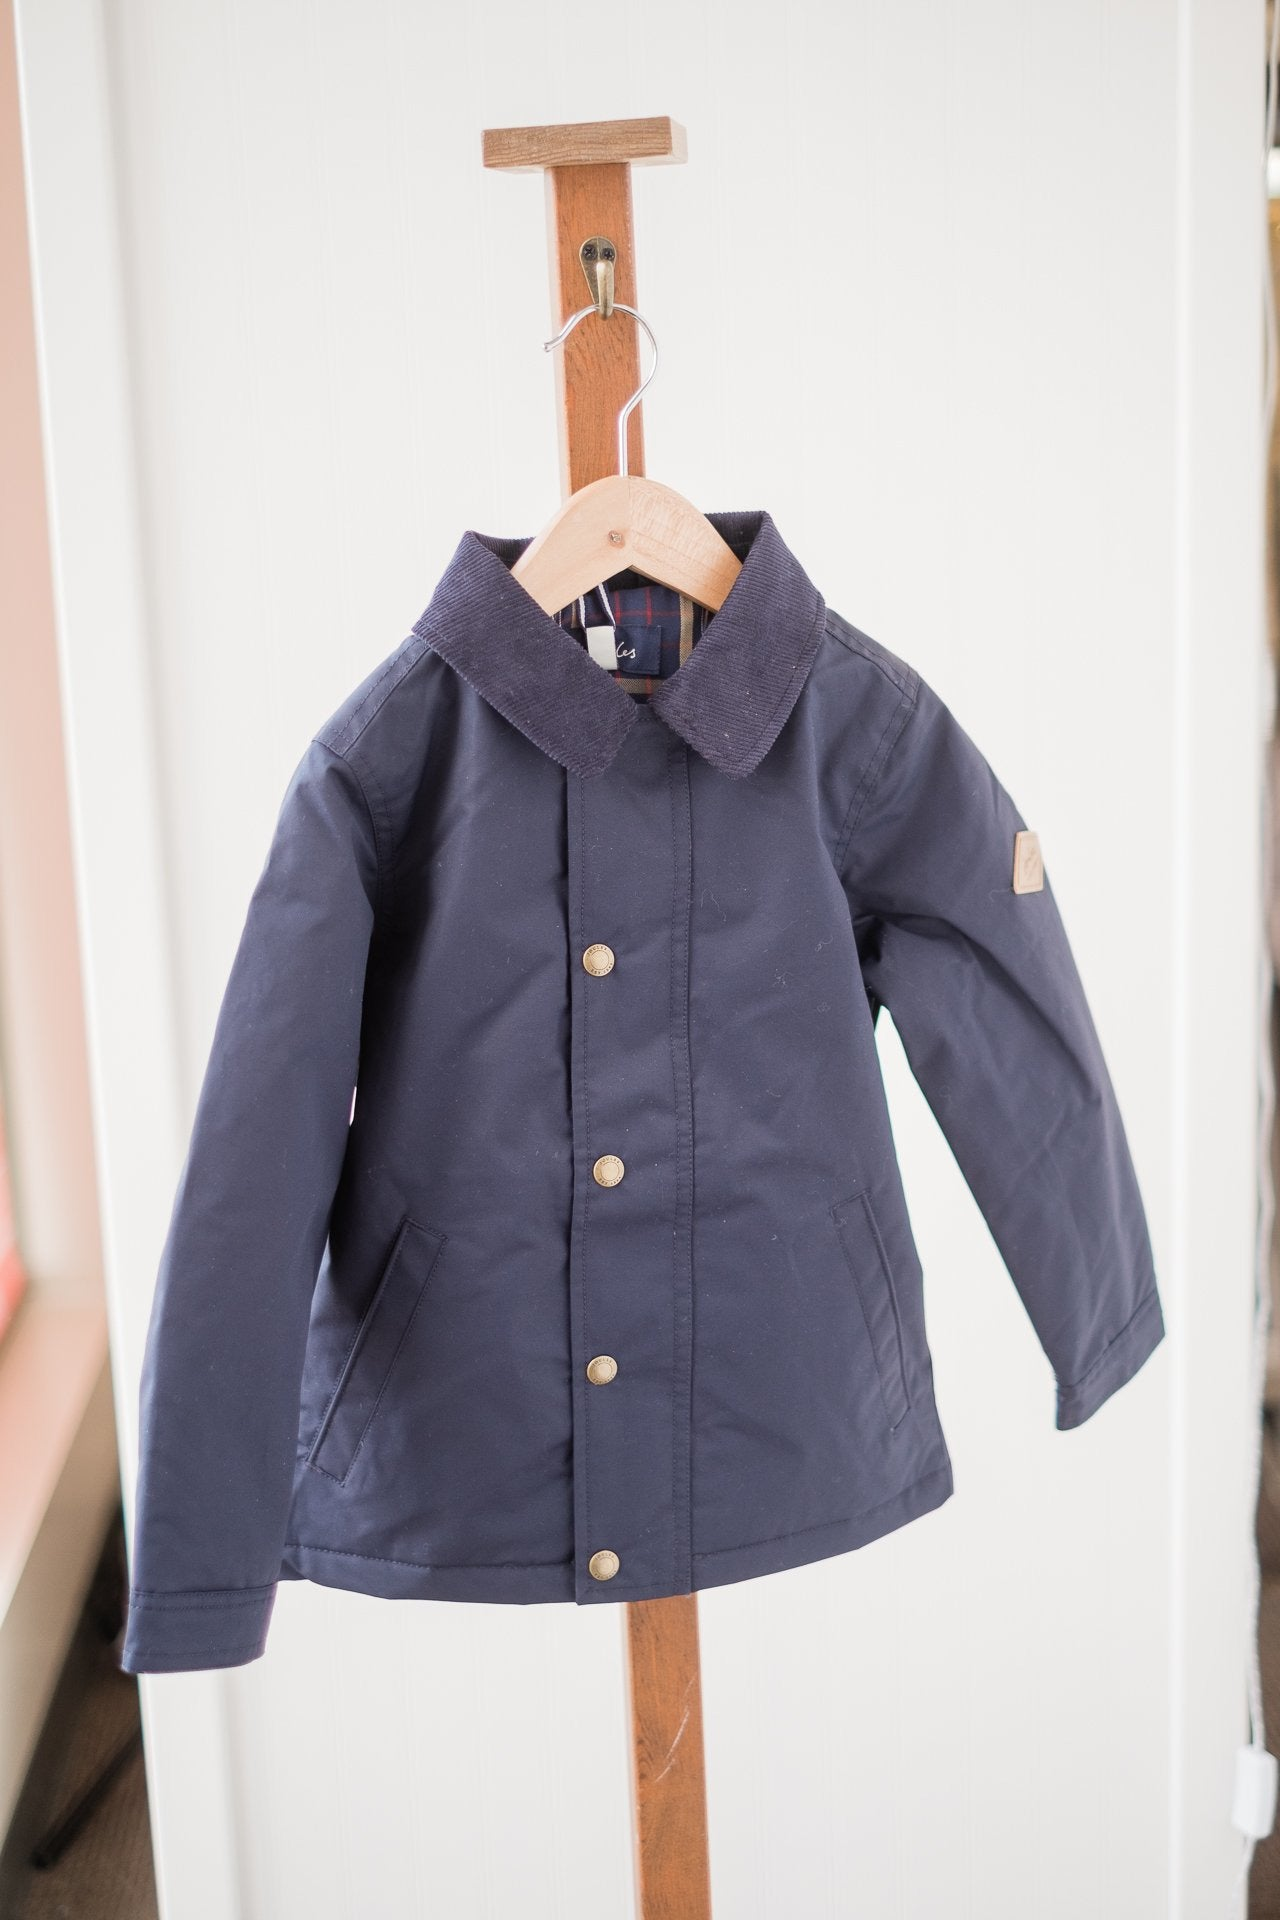 Joules Hartland Harrington Jacket    211953